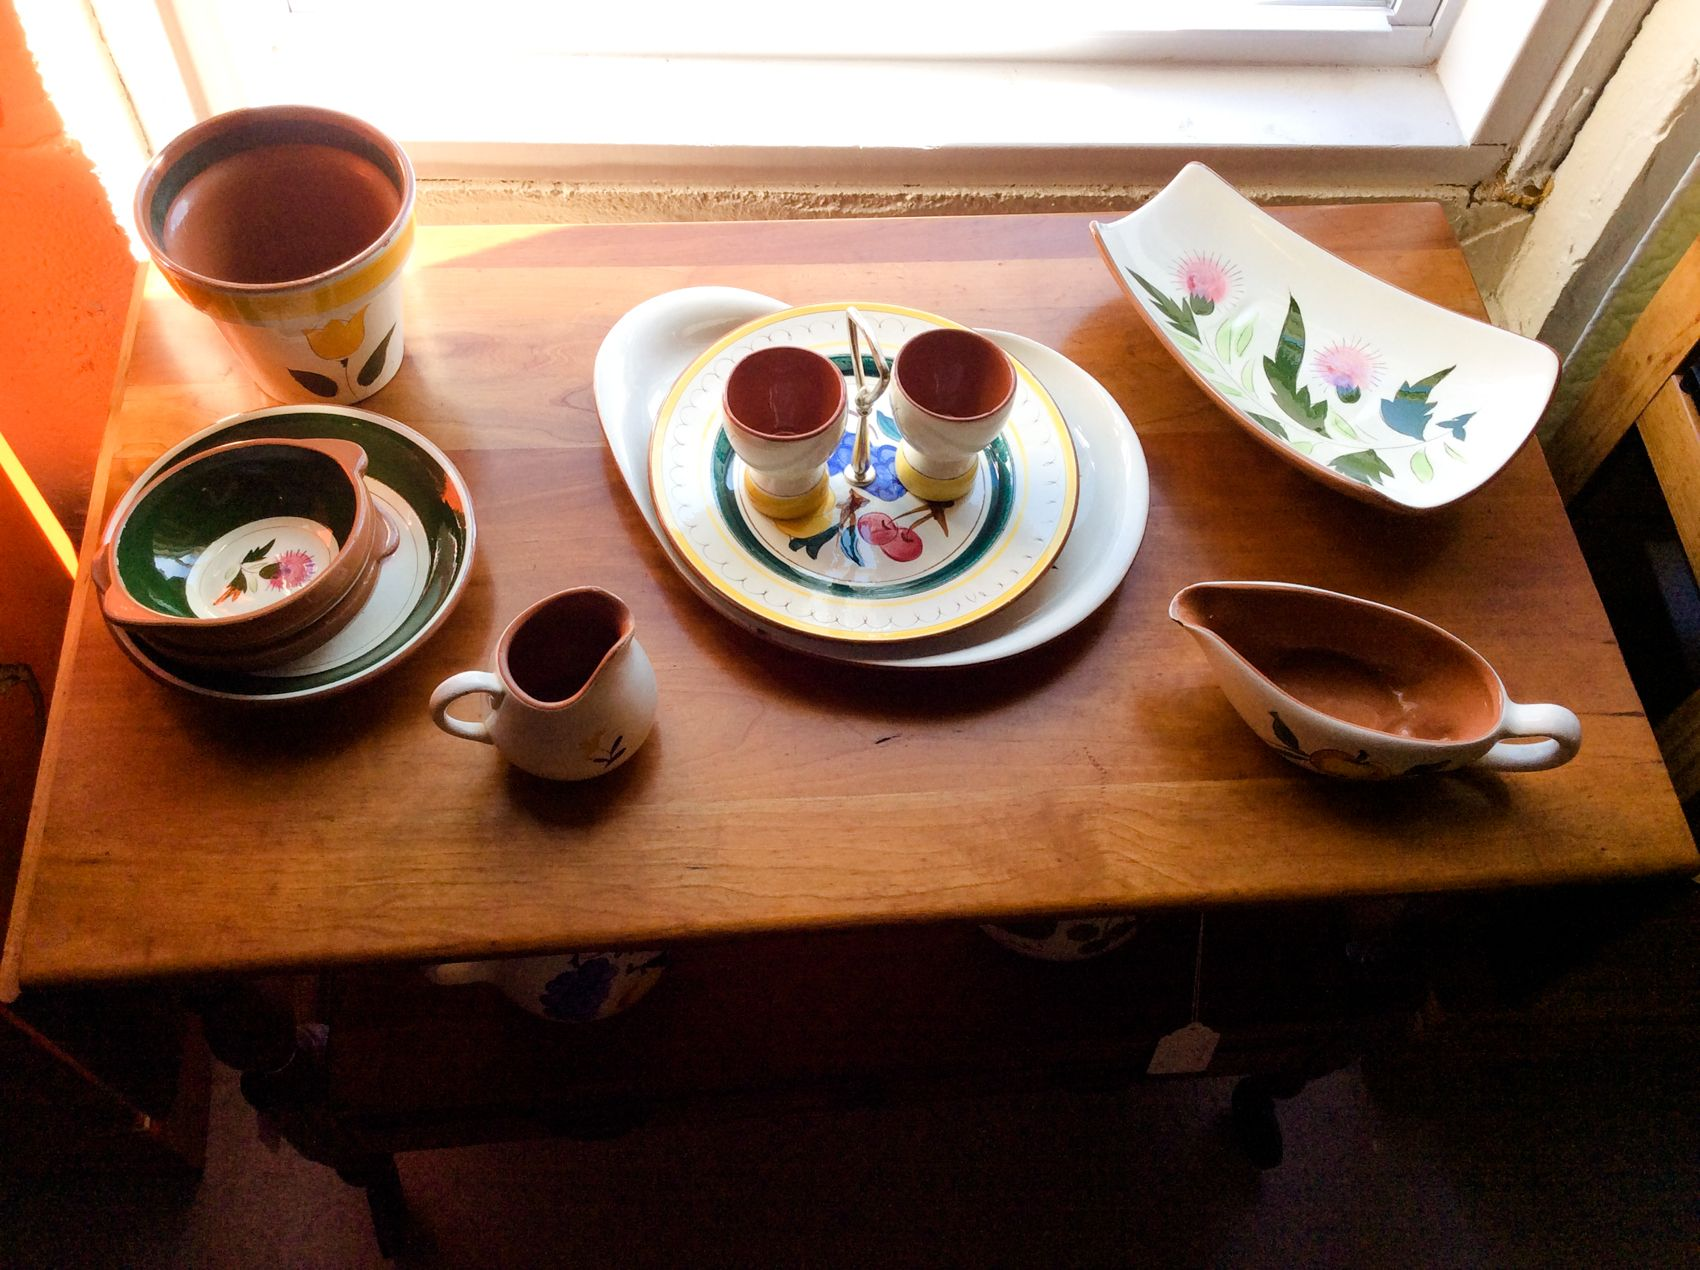 Stangl Pottery Set. Gravey boat, serving tray, flower pot, creamer pitcher, and more. $85 for all of the pieces. www.furniture4Ushop.com 717-519-9657